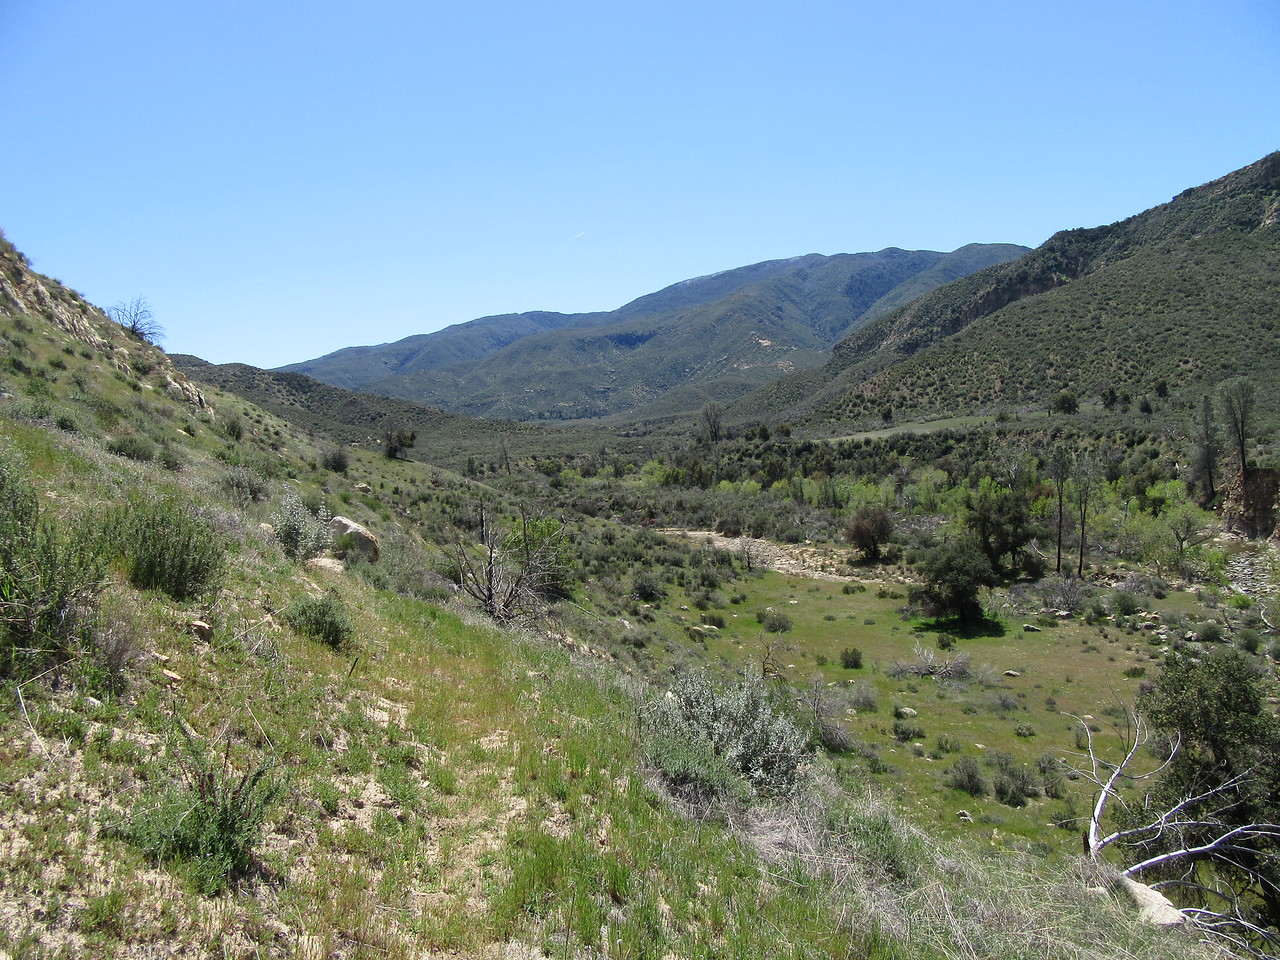 ... the South Fork area soon coming into view, but ...